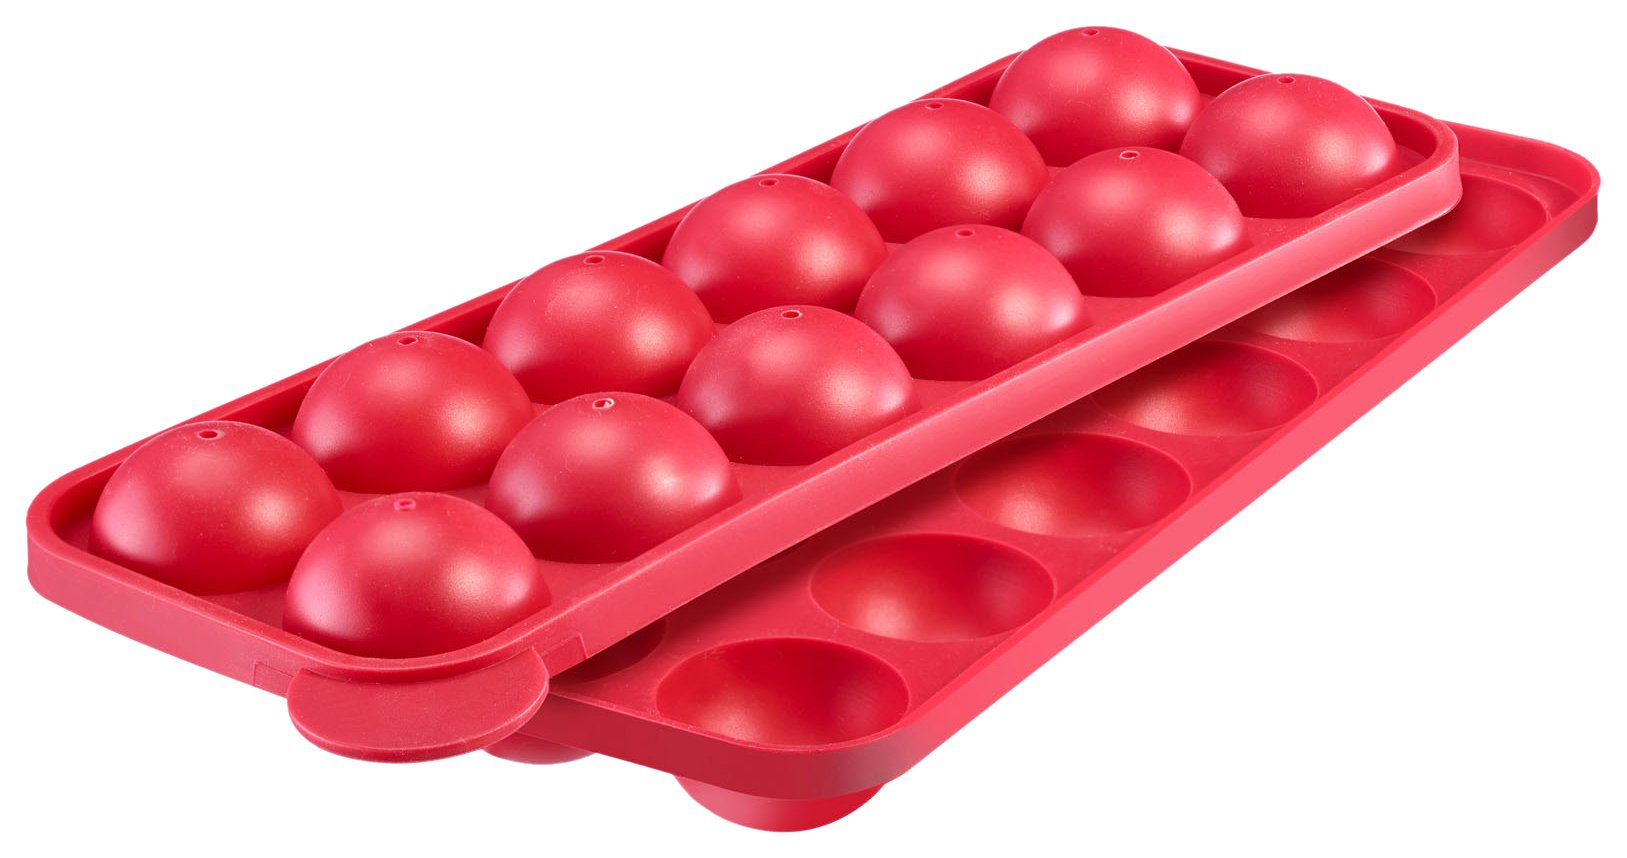 Westmark 30242260 Cakepop Mould, A, Silicone